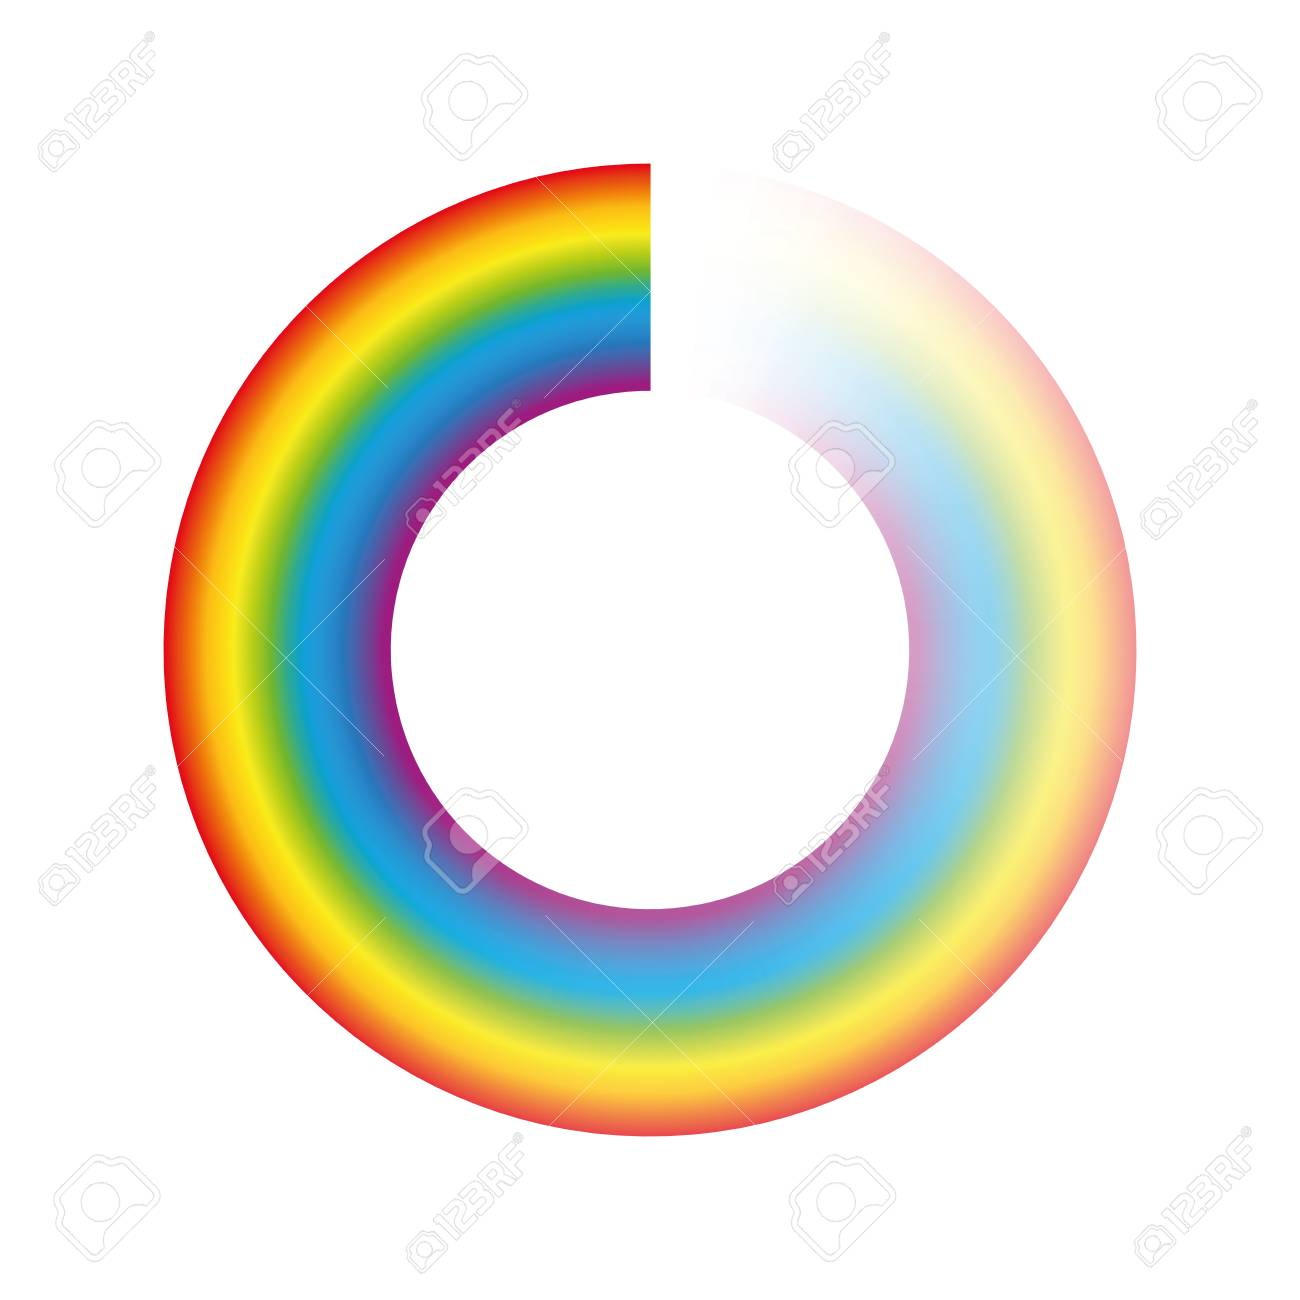 Buffering circle or preloader - rainbow colored ring with transparency